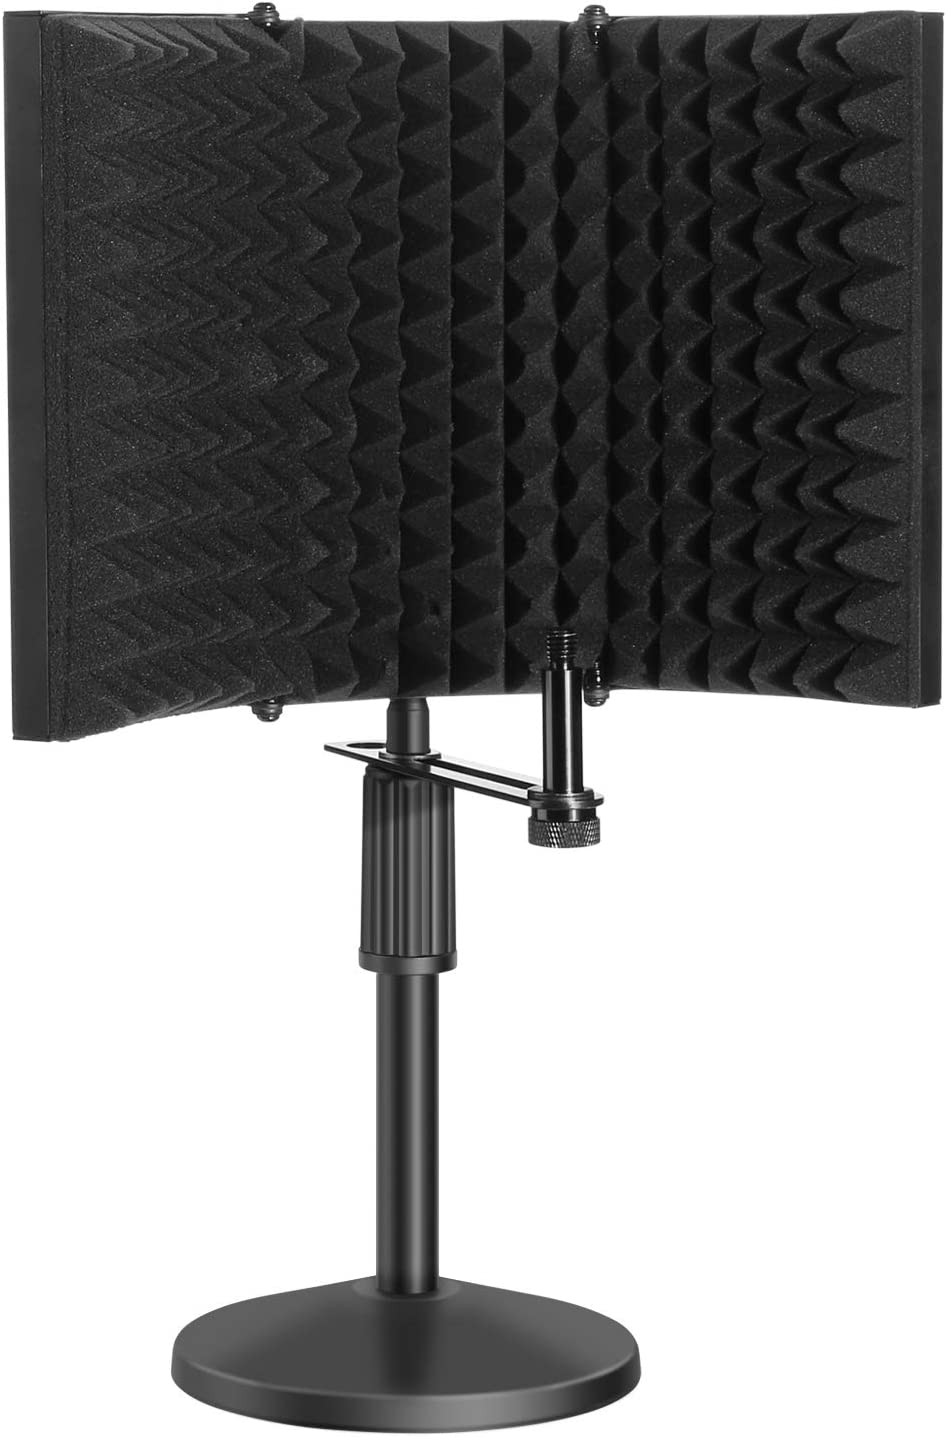 Microphone Isolation Shield Kit, AGPTEK Compact Microphone Isolation Shield with DeskMic Stand, Mic Sound Absorbing Foam Reflector for Sound Recording, Podcasts, Vocals, Singing and Broadcasting